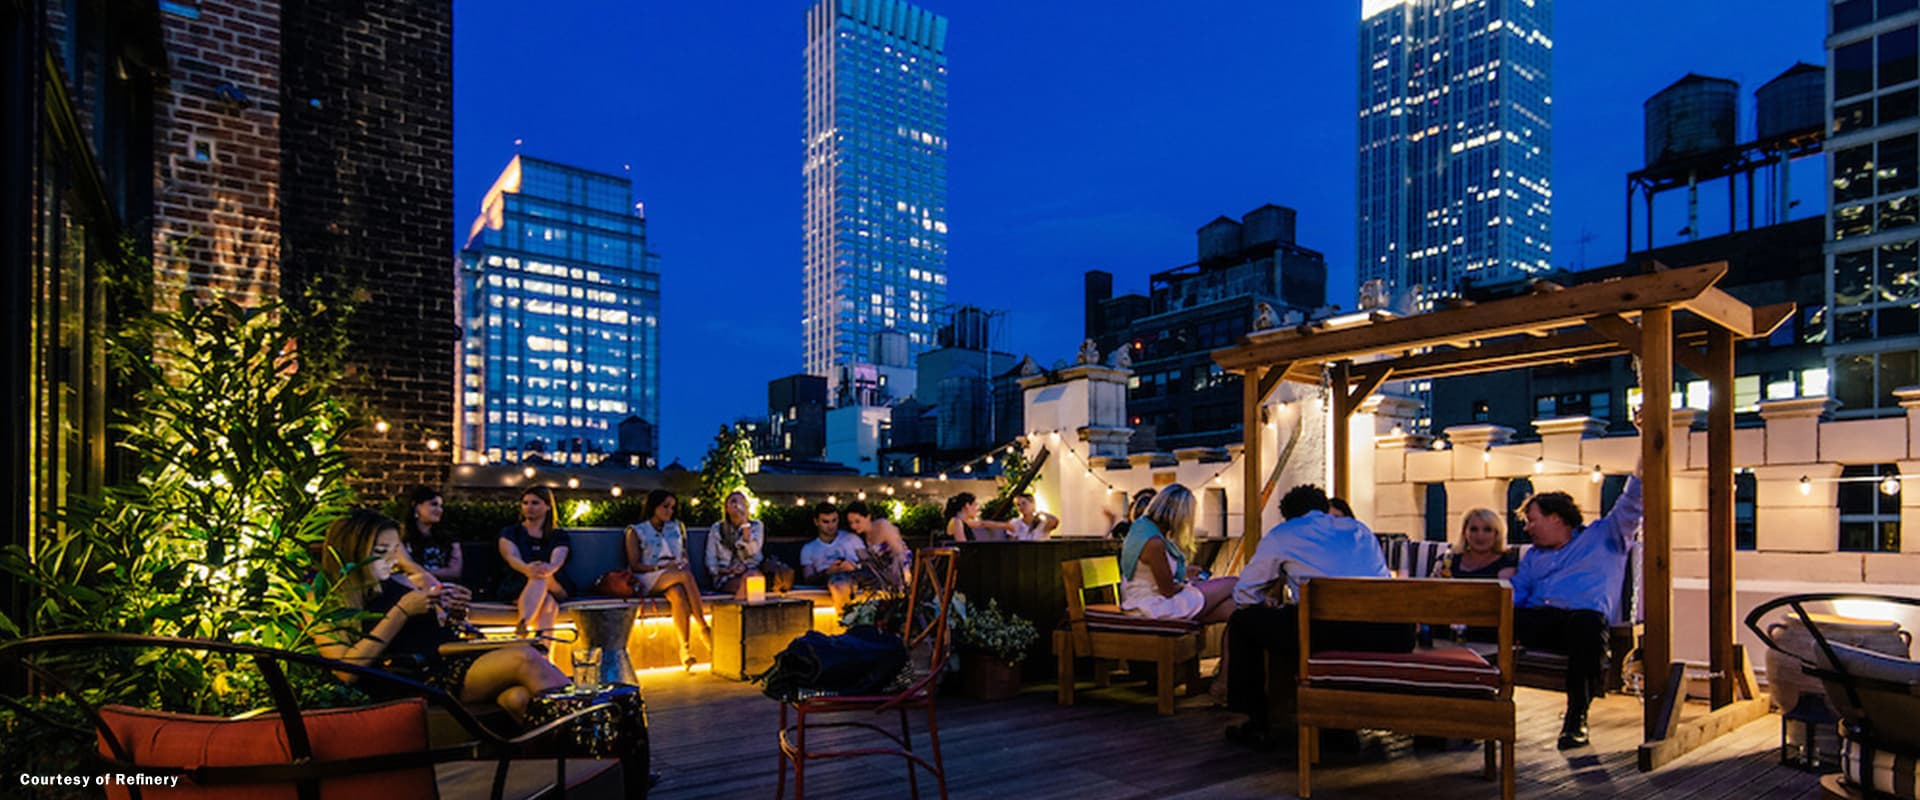 The Rooftops to Make You Feel Majestic This Summer